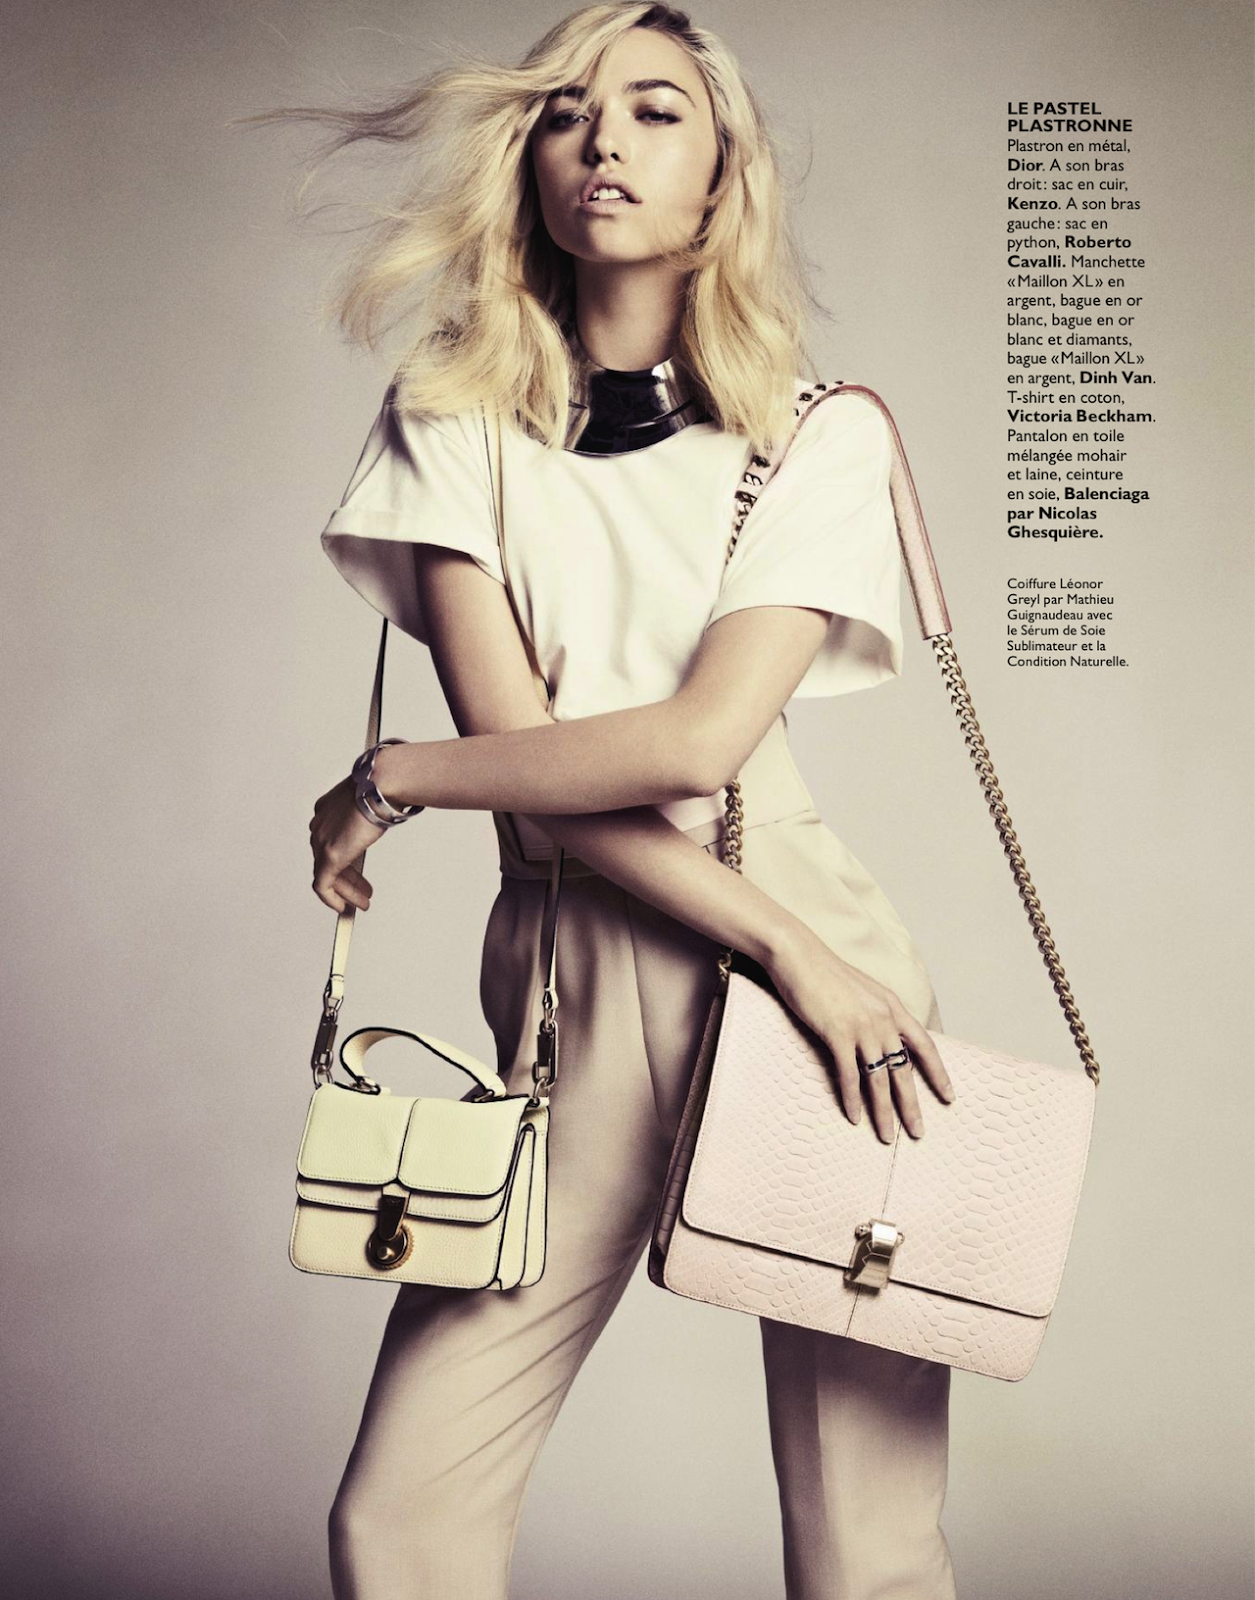 envies de nude: cora keegan by honer akrawi for grazia france 22nd march 2013   visual optimism; fashion editorials, shows, campaigns & more!